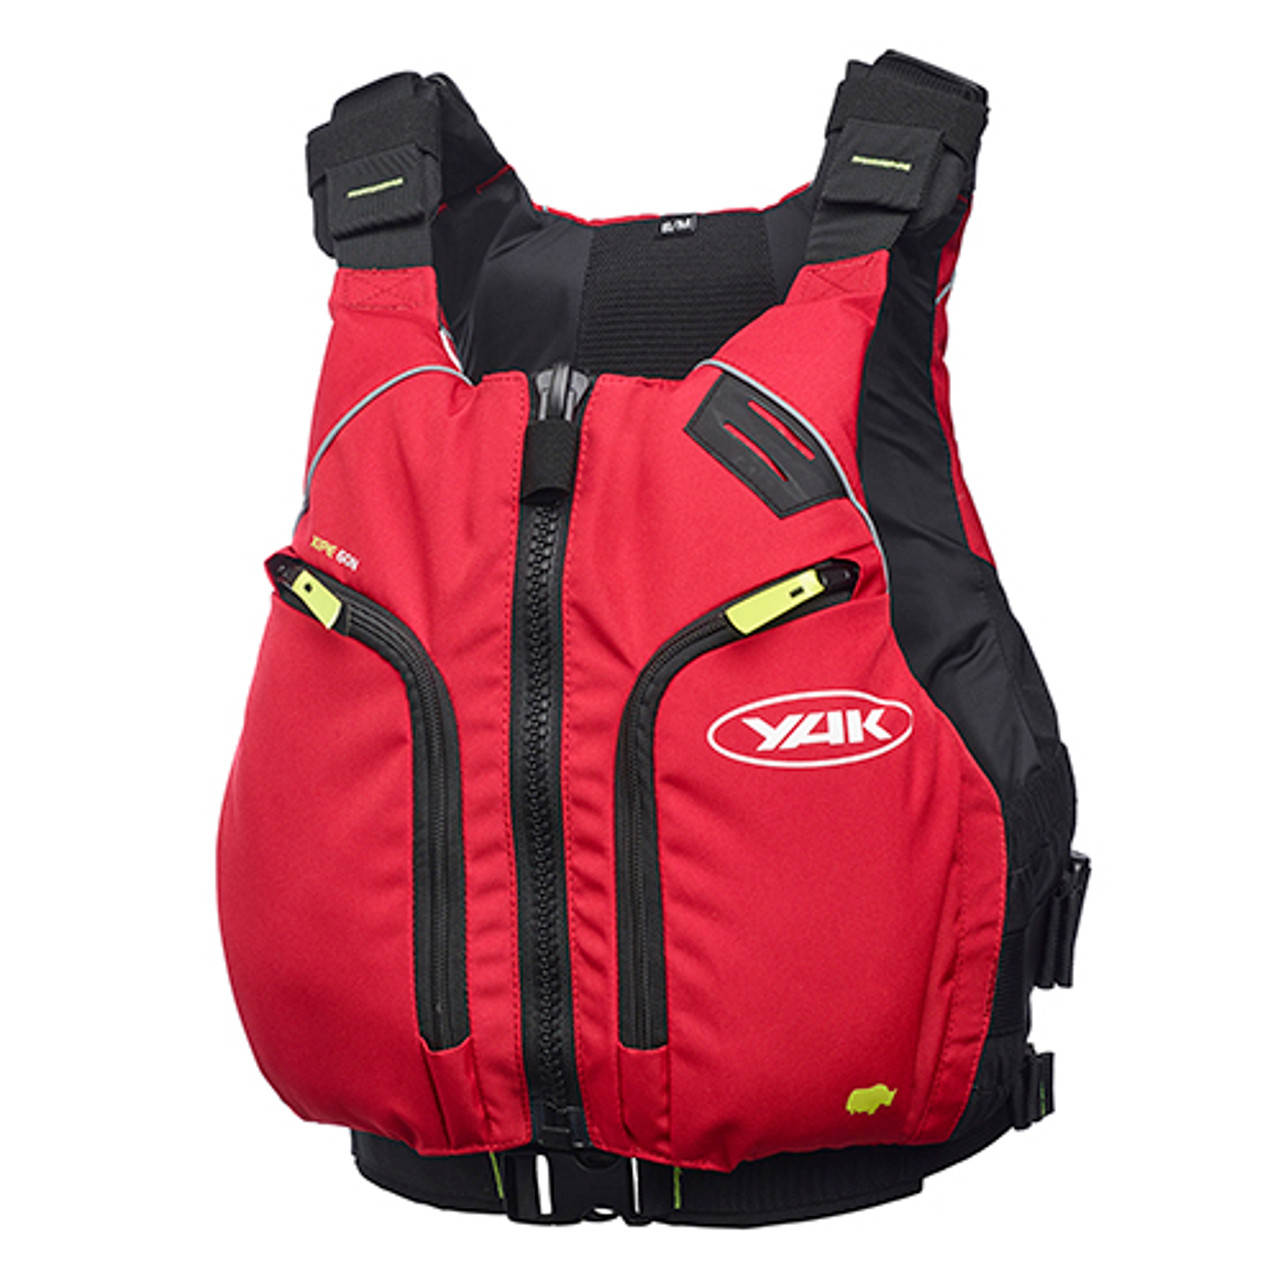 Yak Xipe 60N Touring Buoyancy Aid Red - Front